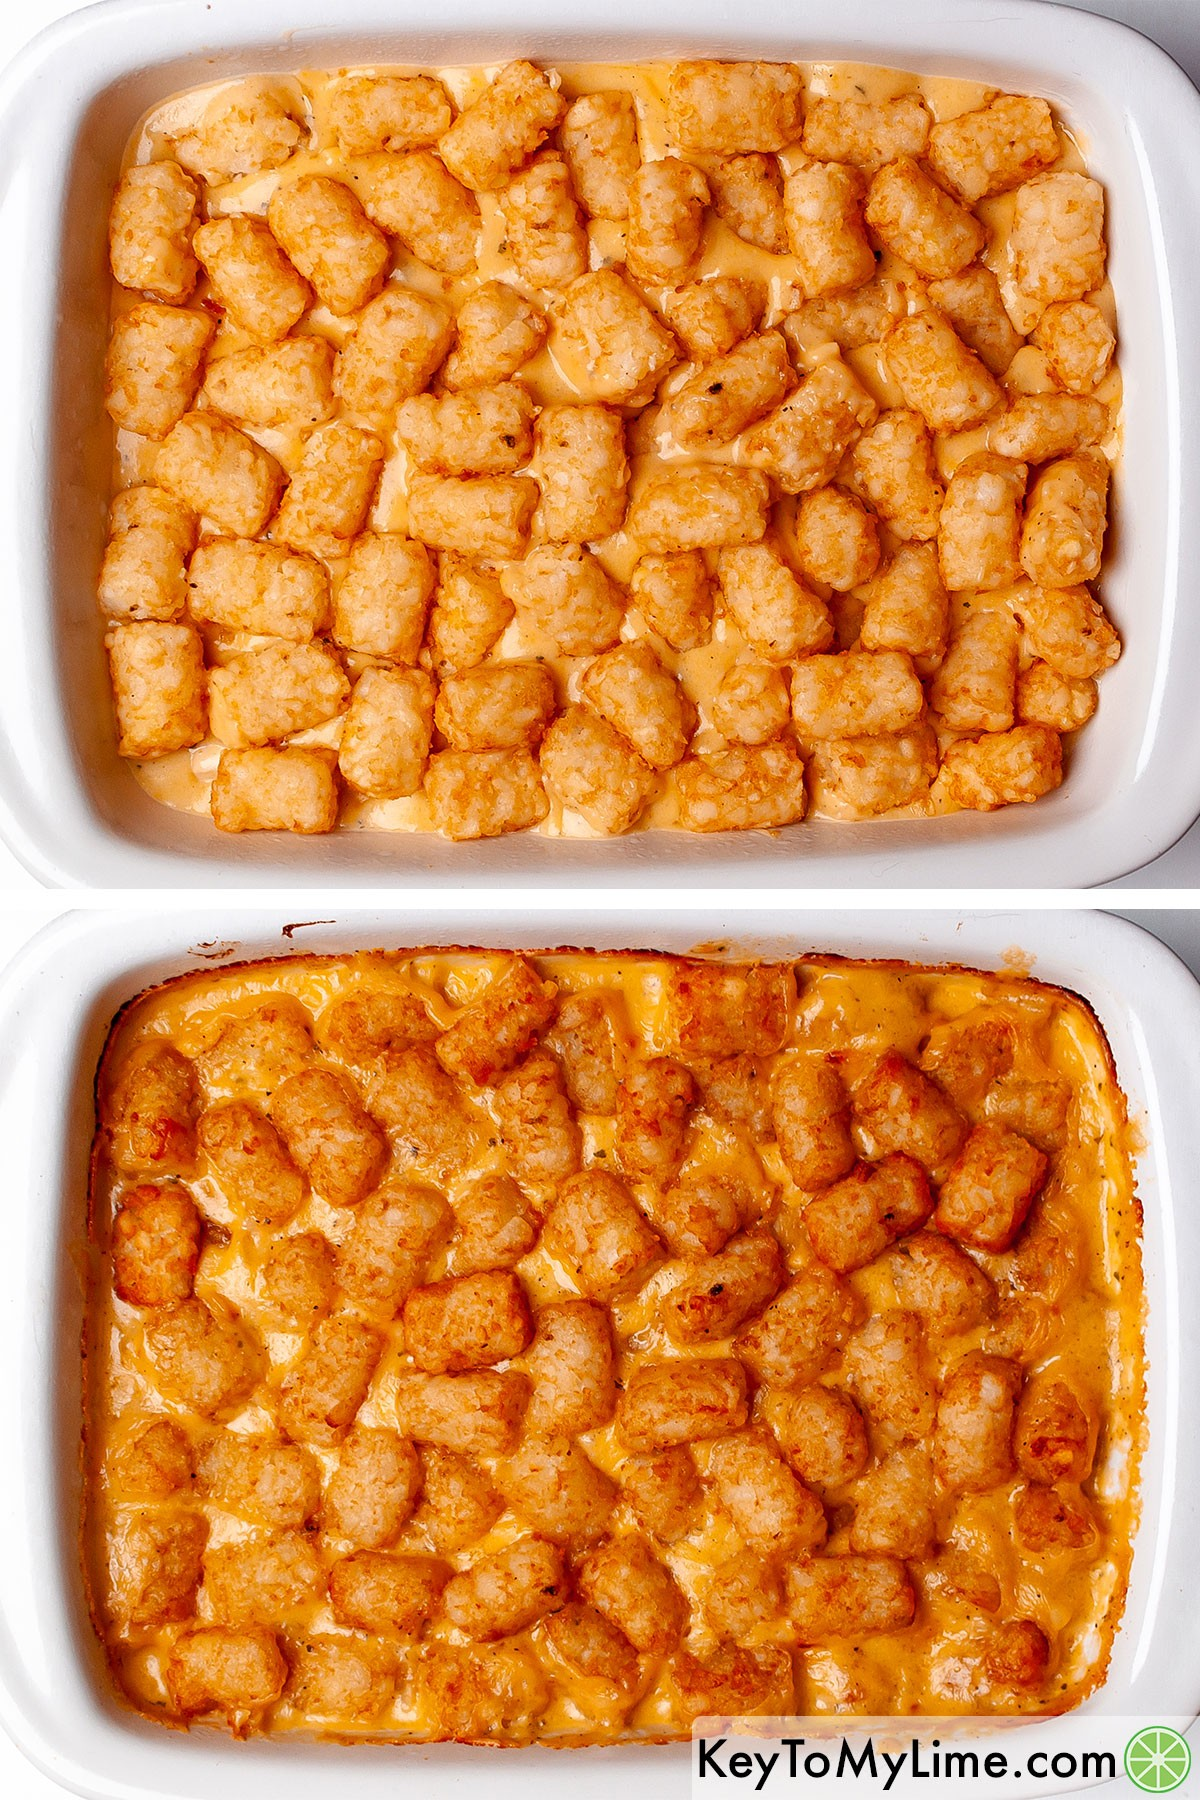 Chicken tater tot casserole before and after baking.